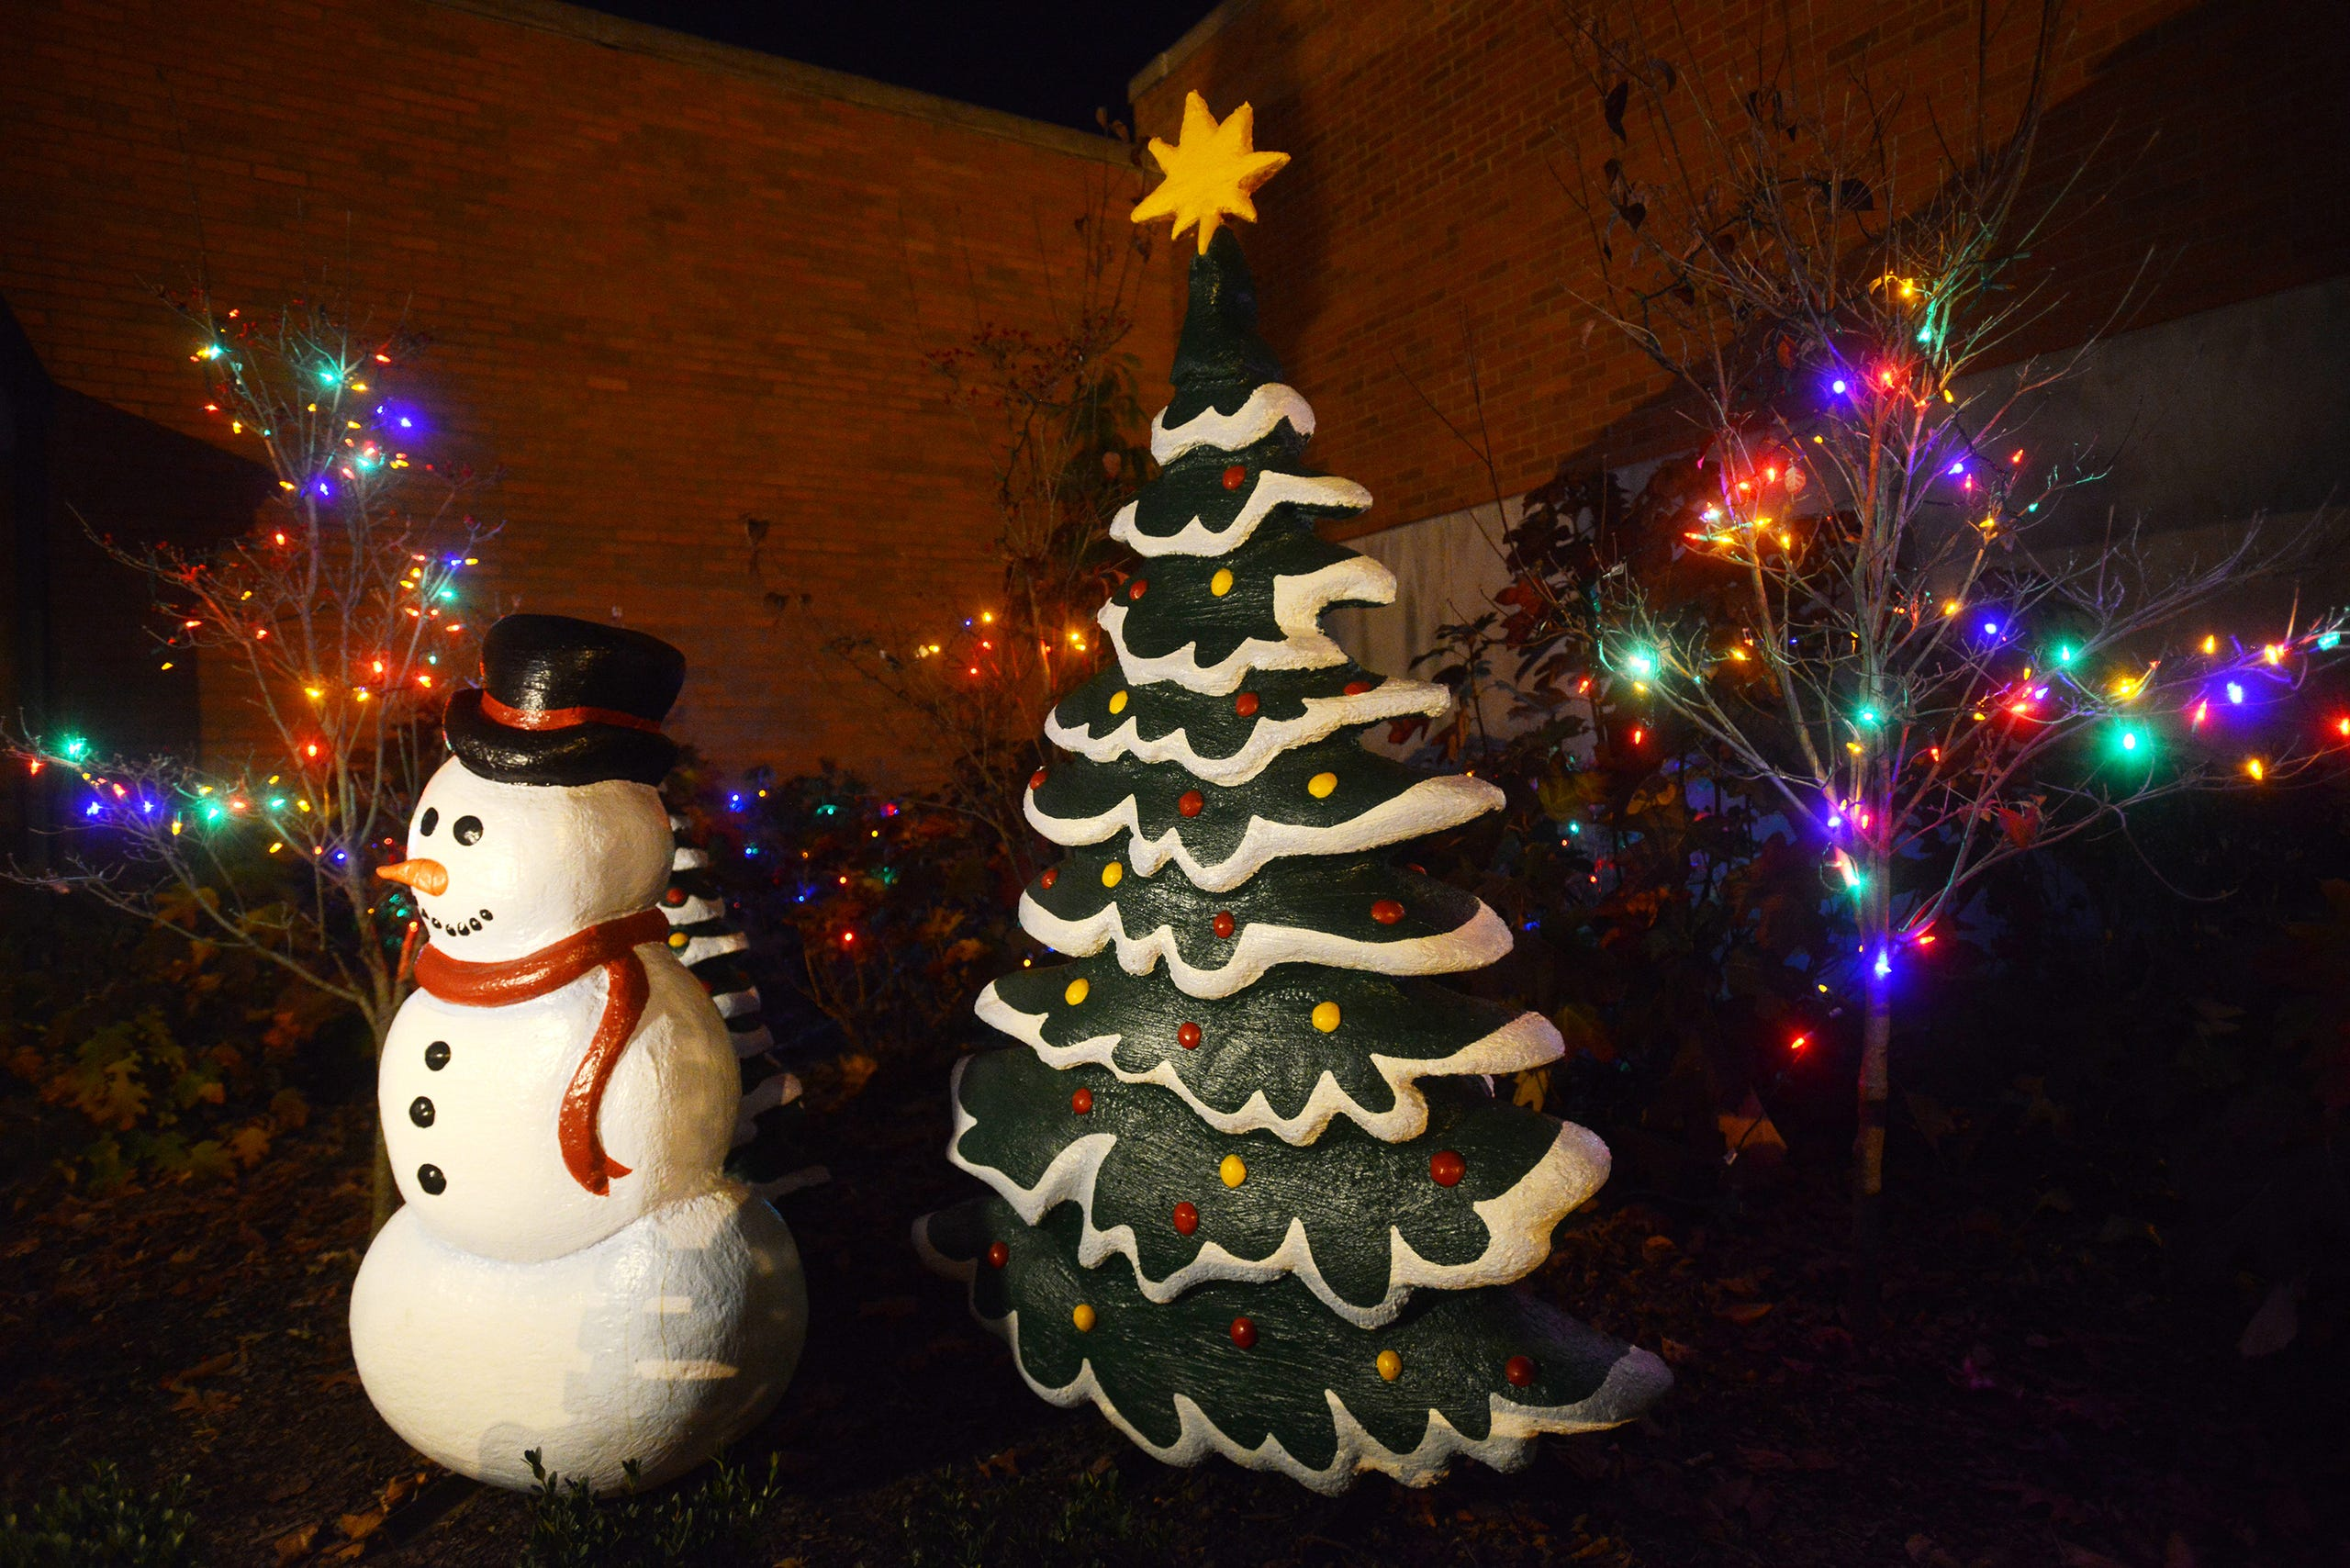 Zanesville Courthouse Christmas Lights 2020 A Storybook Christmas decorations